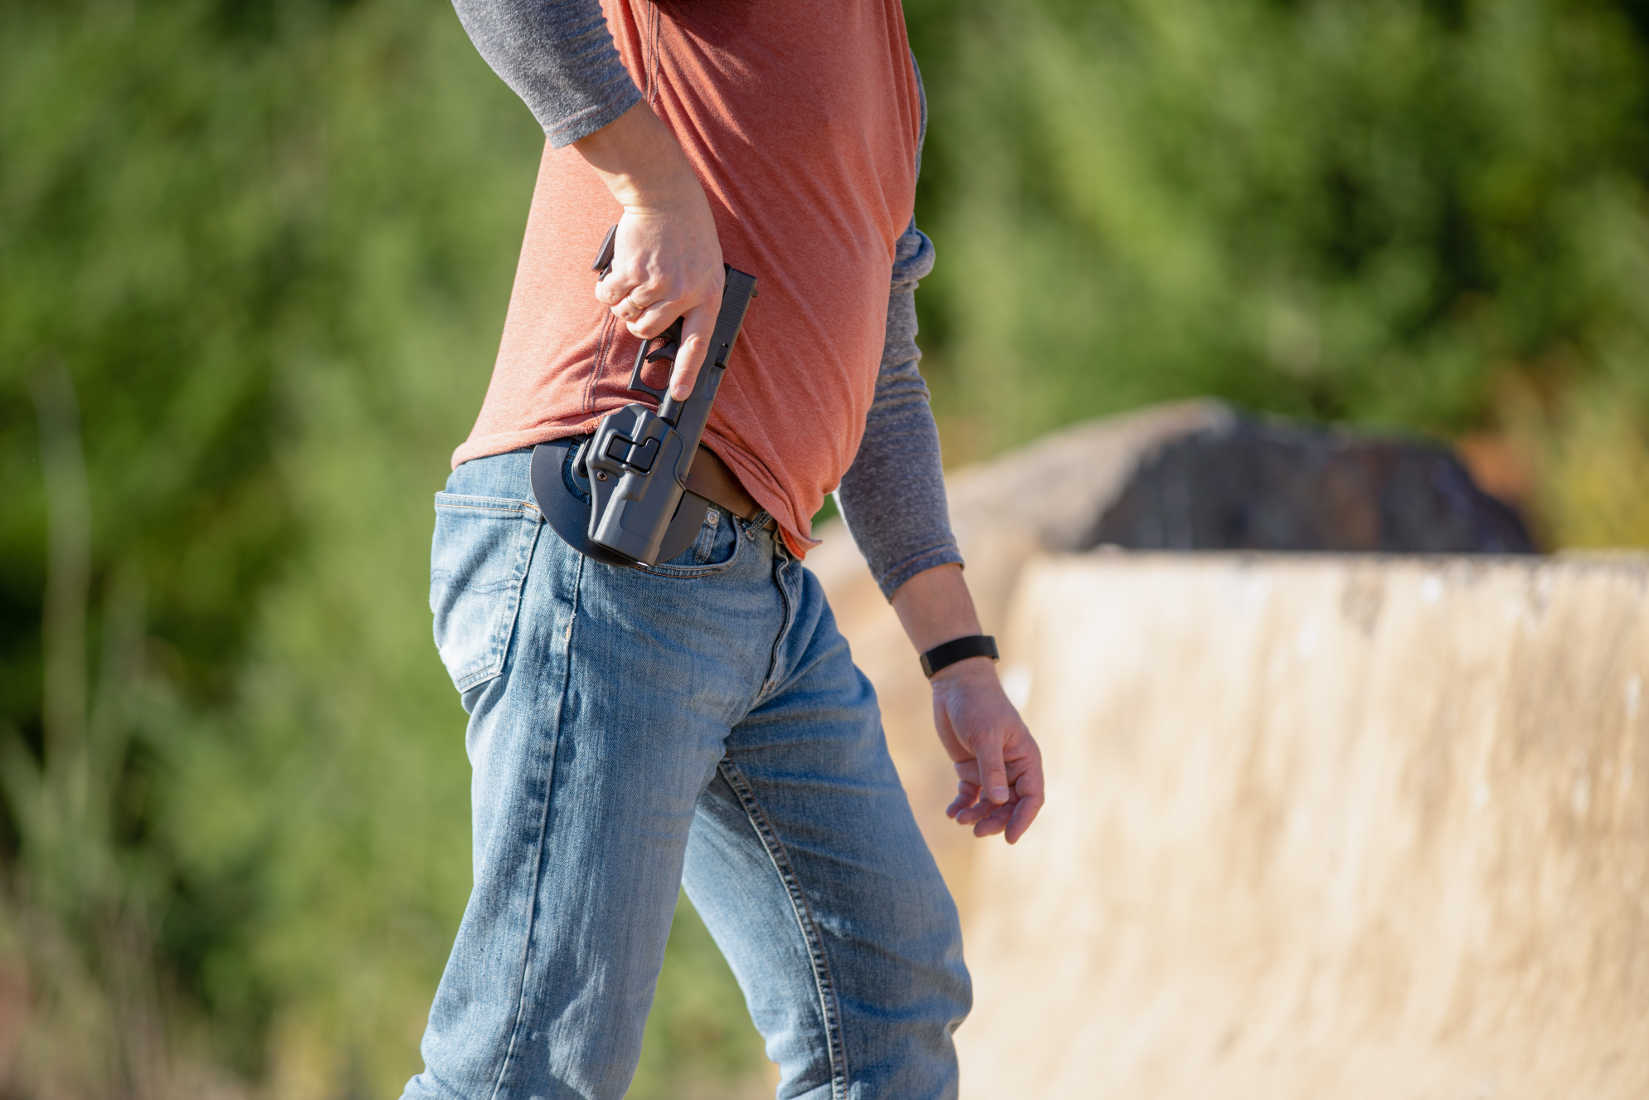 More Proof in Oklahoma: Constitutional Carry Deters Criminals